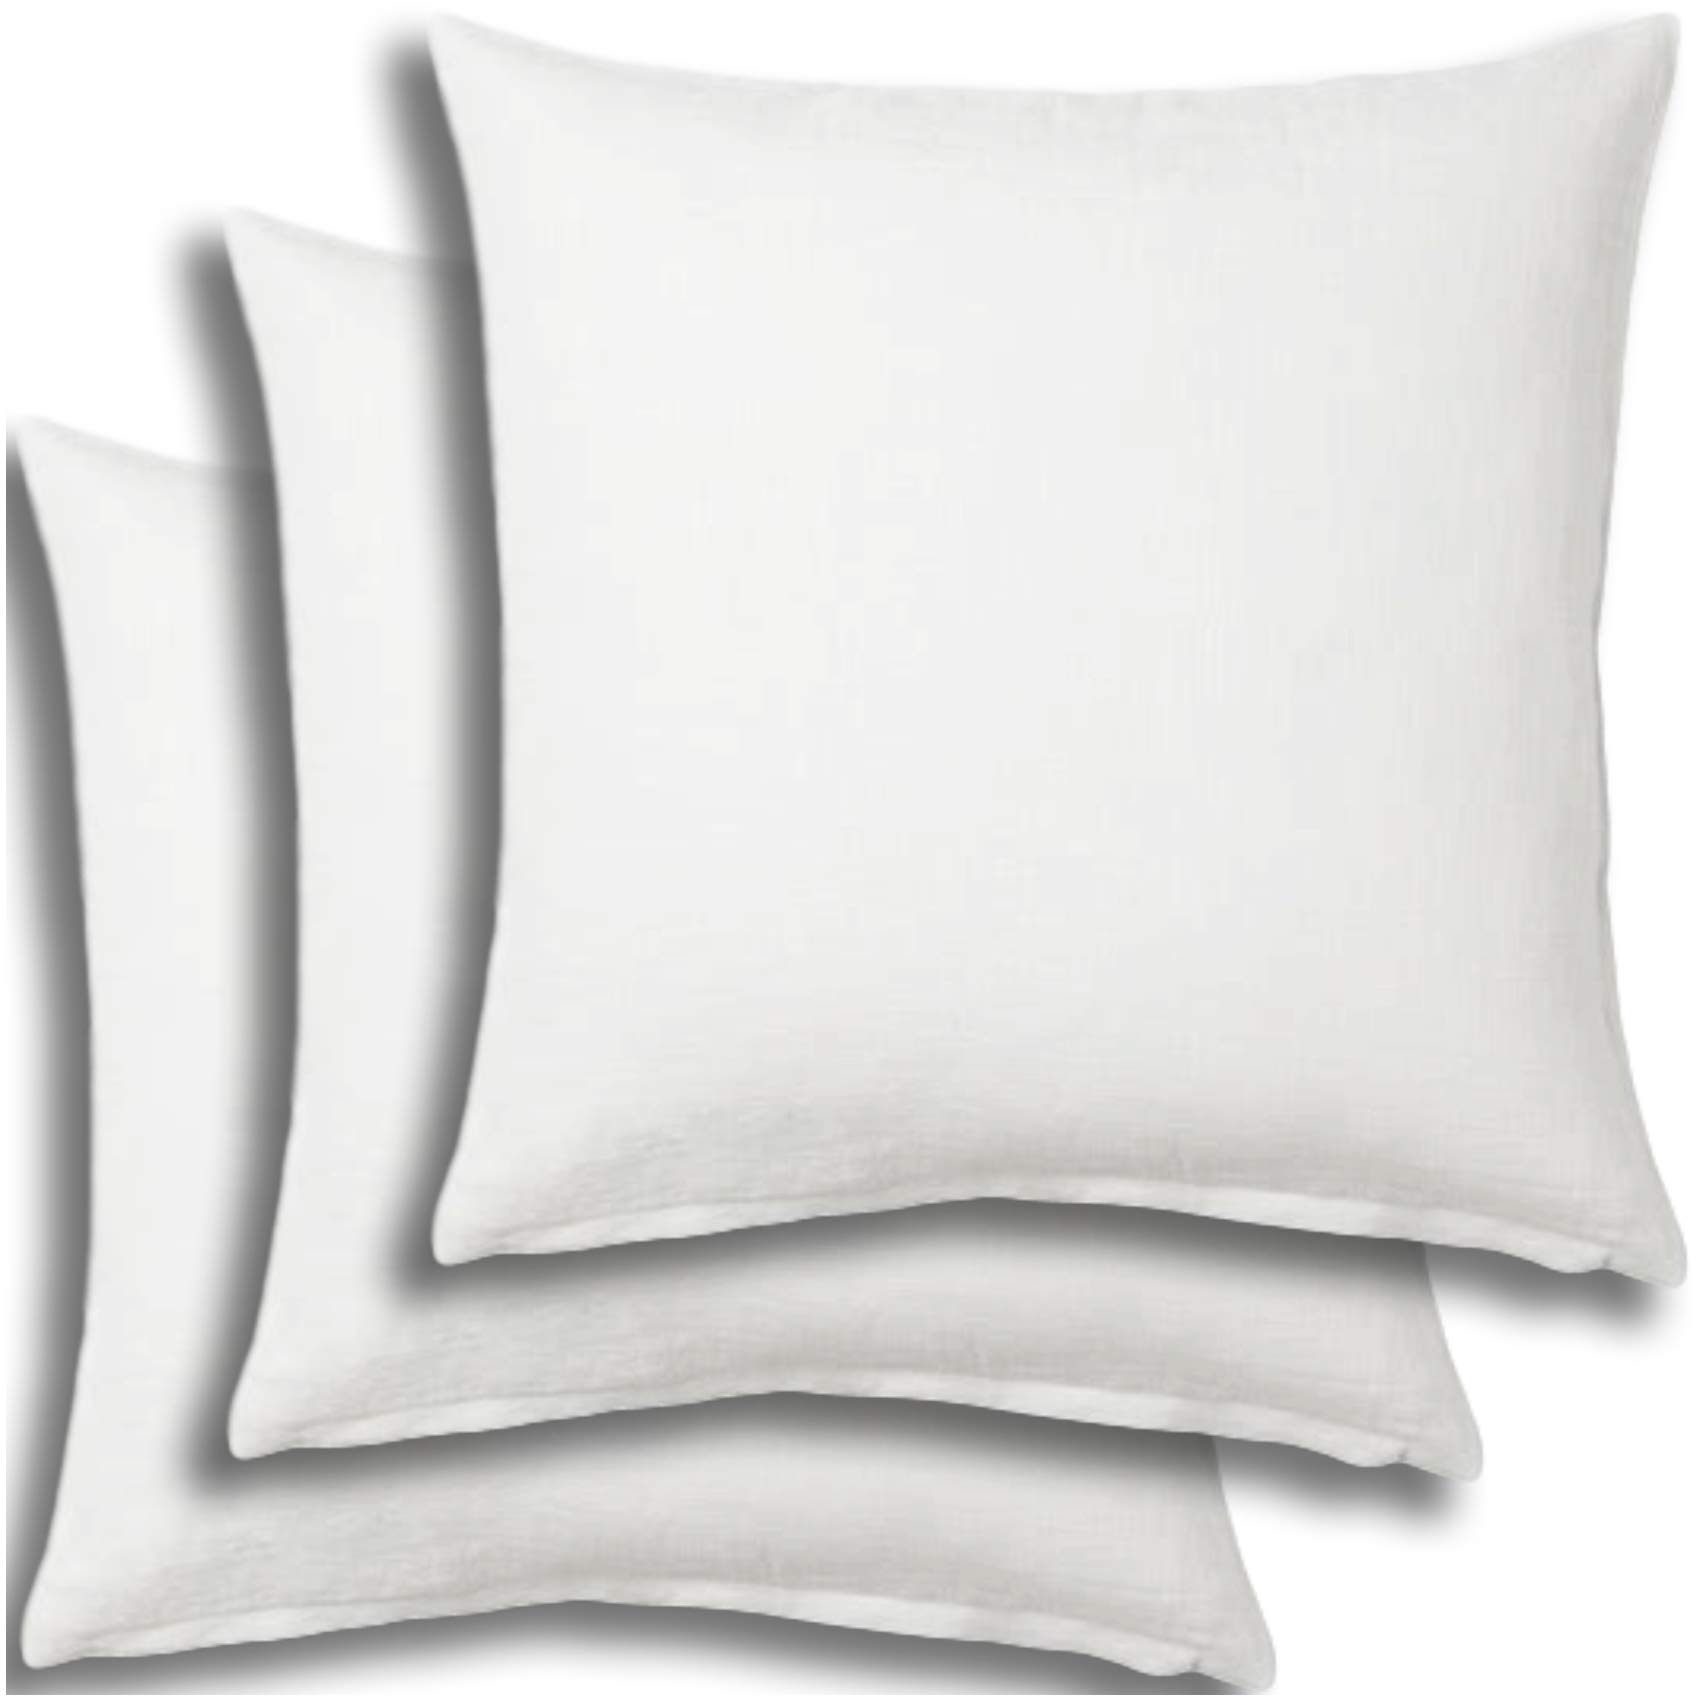 Set of 3 - Pillow Insert 28x28 Decorative Throw Pillow Inserts - Euro Sham Stuffer for Sofa Bed Couch Square White Form 3 Pack - Hypoallergenic Machine Washable and Dry Polyester - Made in USA